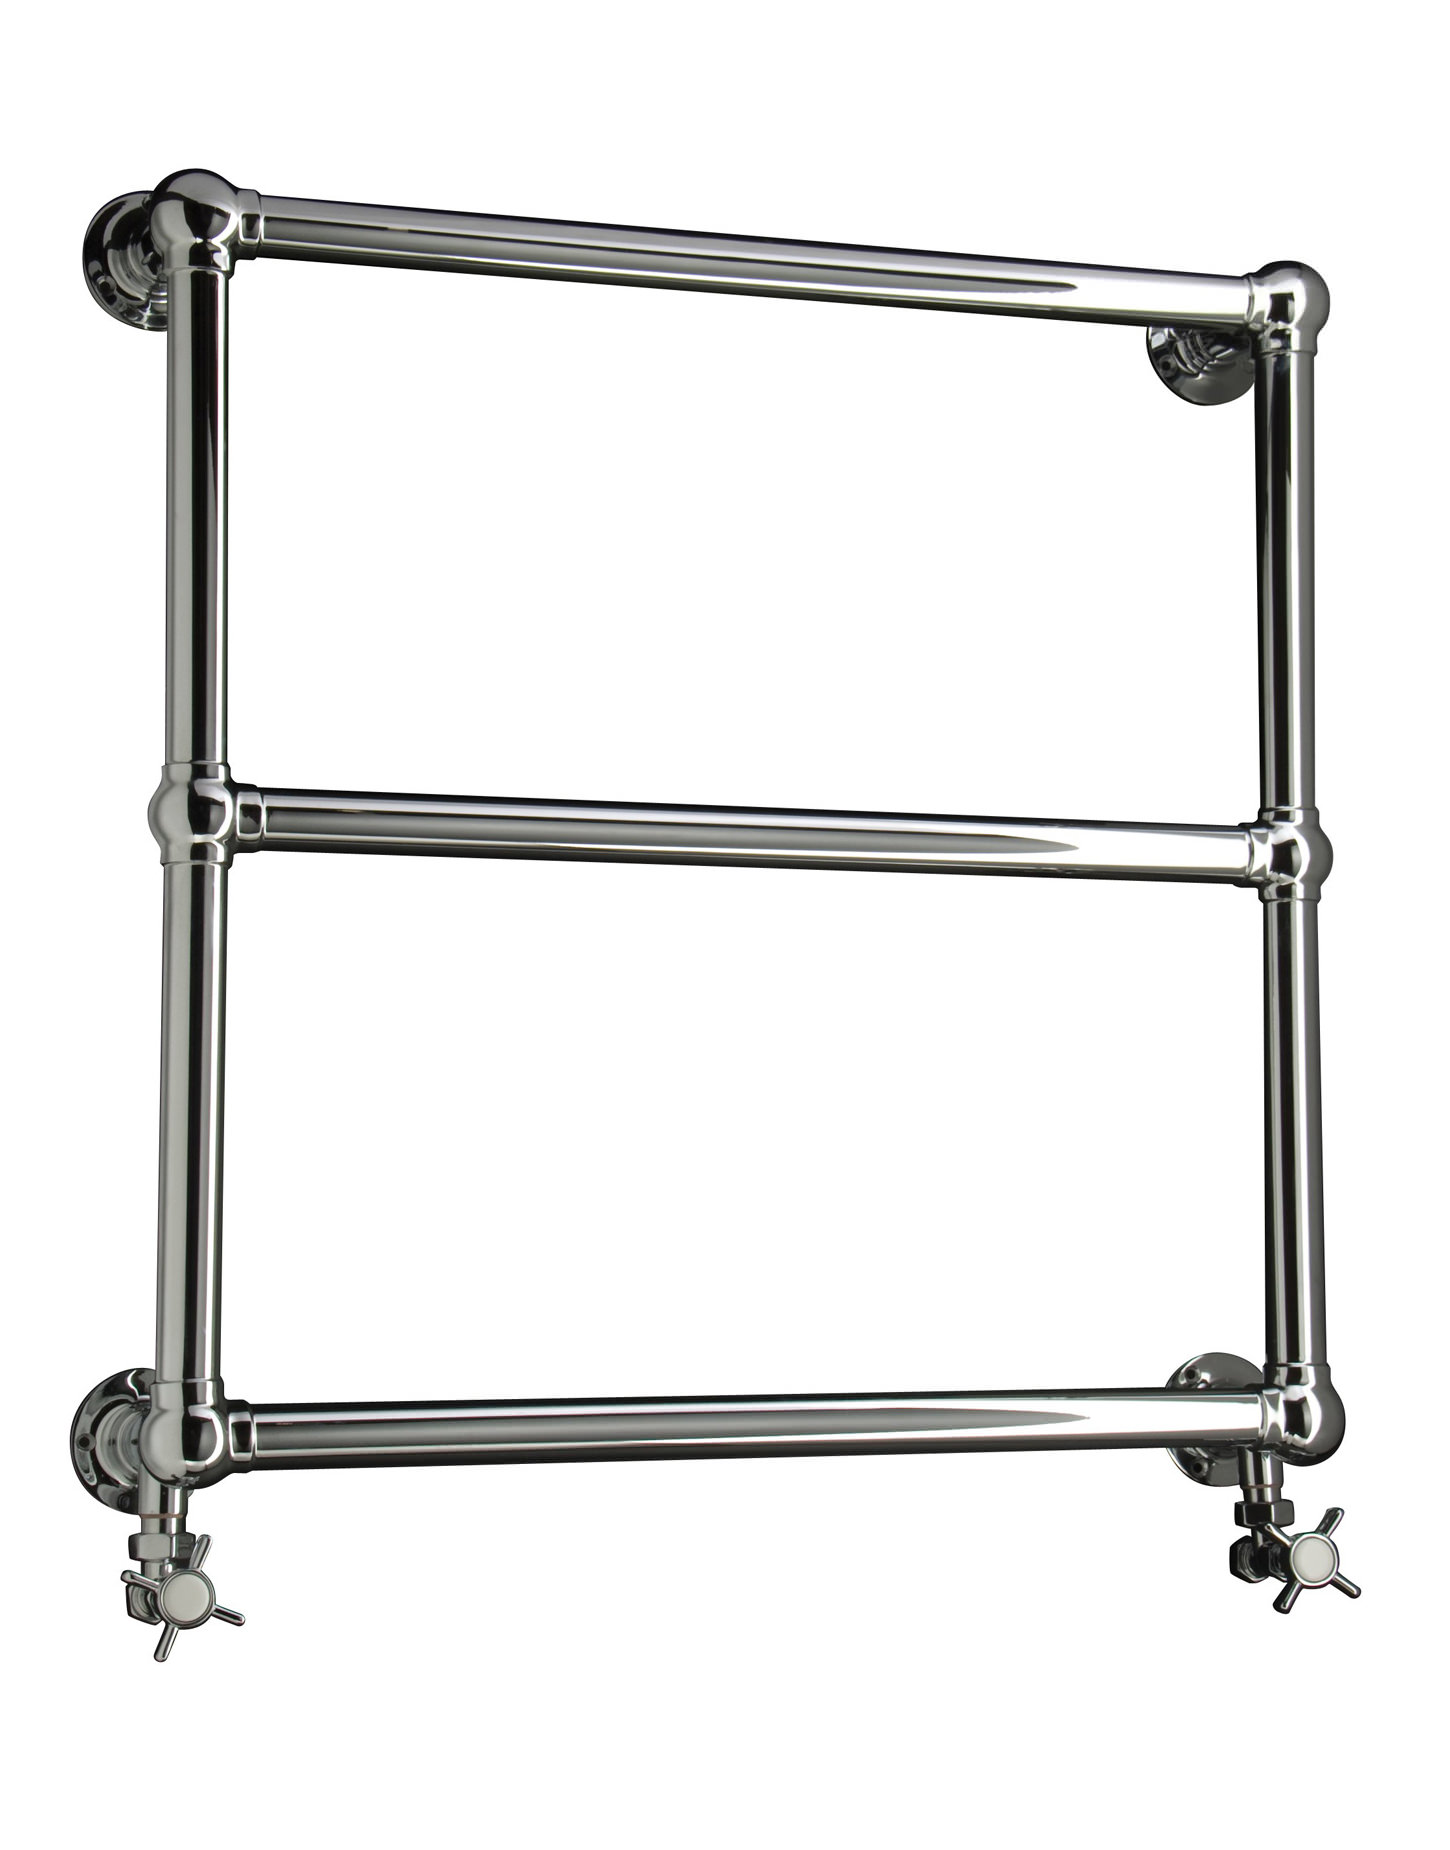 Dq Heating Hockwold Wall Mounted Towel Rail 846mm X 694mm